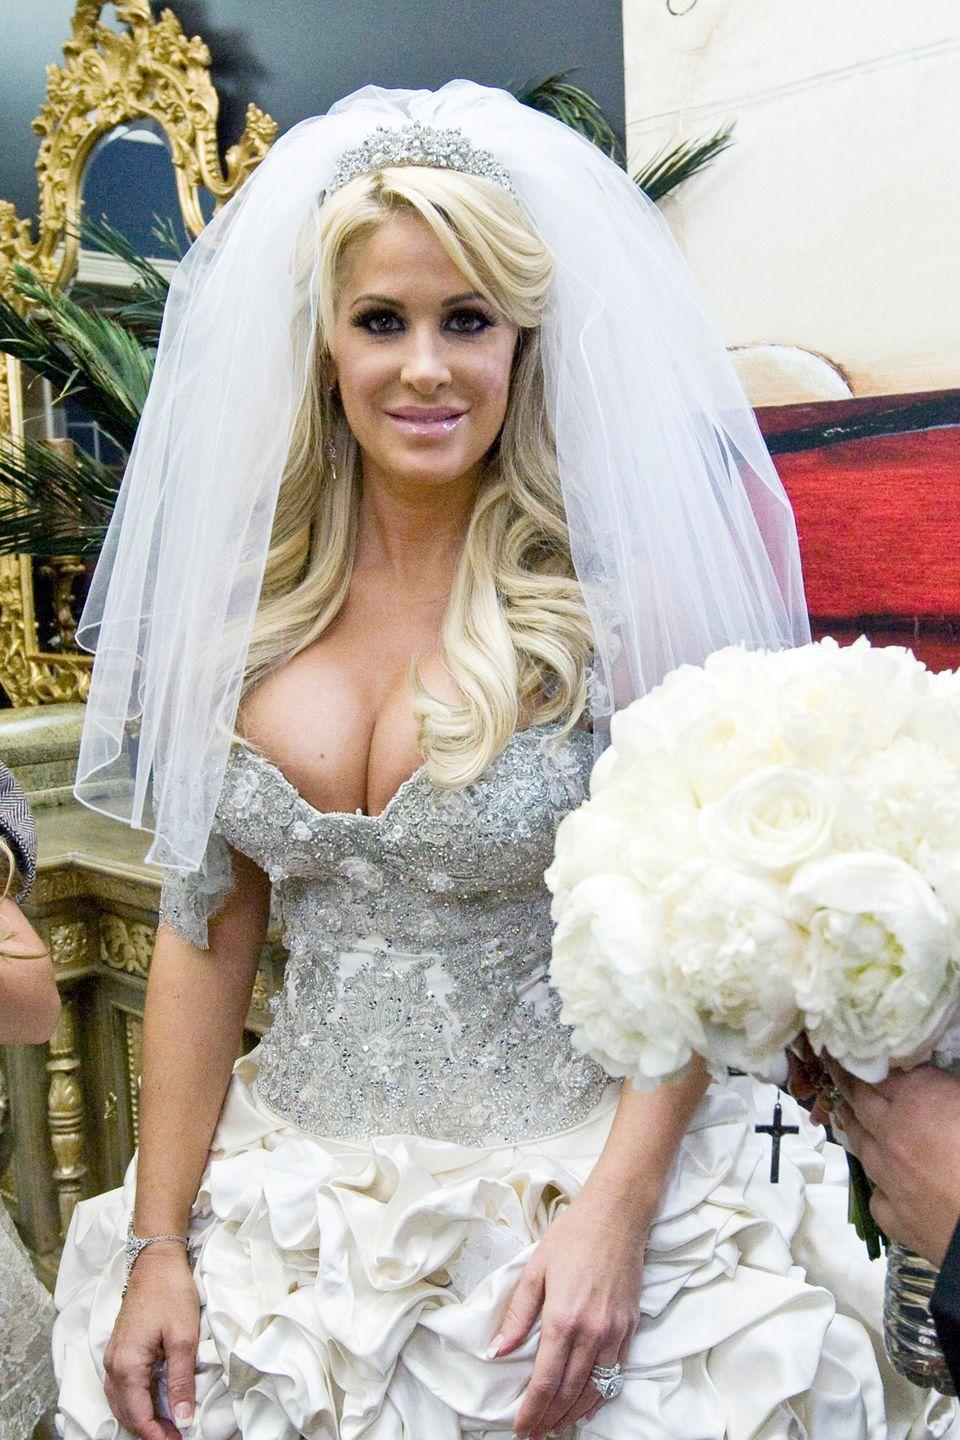 "<p>Not to be outdone, this <em>Real Housewives of Atlanta </em>star wore three dresses to her wedding to Kroy <span class=""redactor-unlink"">Biermann</span>. Her most extravagant (and revealing) was this low-cut, 32-pound Baracci Beverly Hills dress, which reportedly <a href=""http://www.dailymail.co.uk/tvshowbiz/article-2062430/Kim-Zolciak-wears-THREE-wedding-outfits-1-million-nuptials.html"" rel=""nofollow noopener"" target=""_blank"" data-ylk=""slk:set her back $58,000"" class=""link rapid-noclick-resp"">set her back $58,000</a>.</p>"